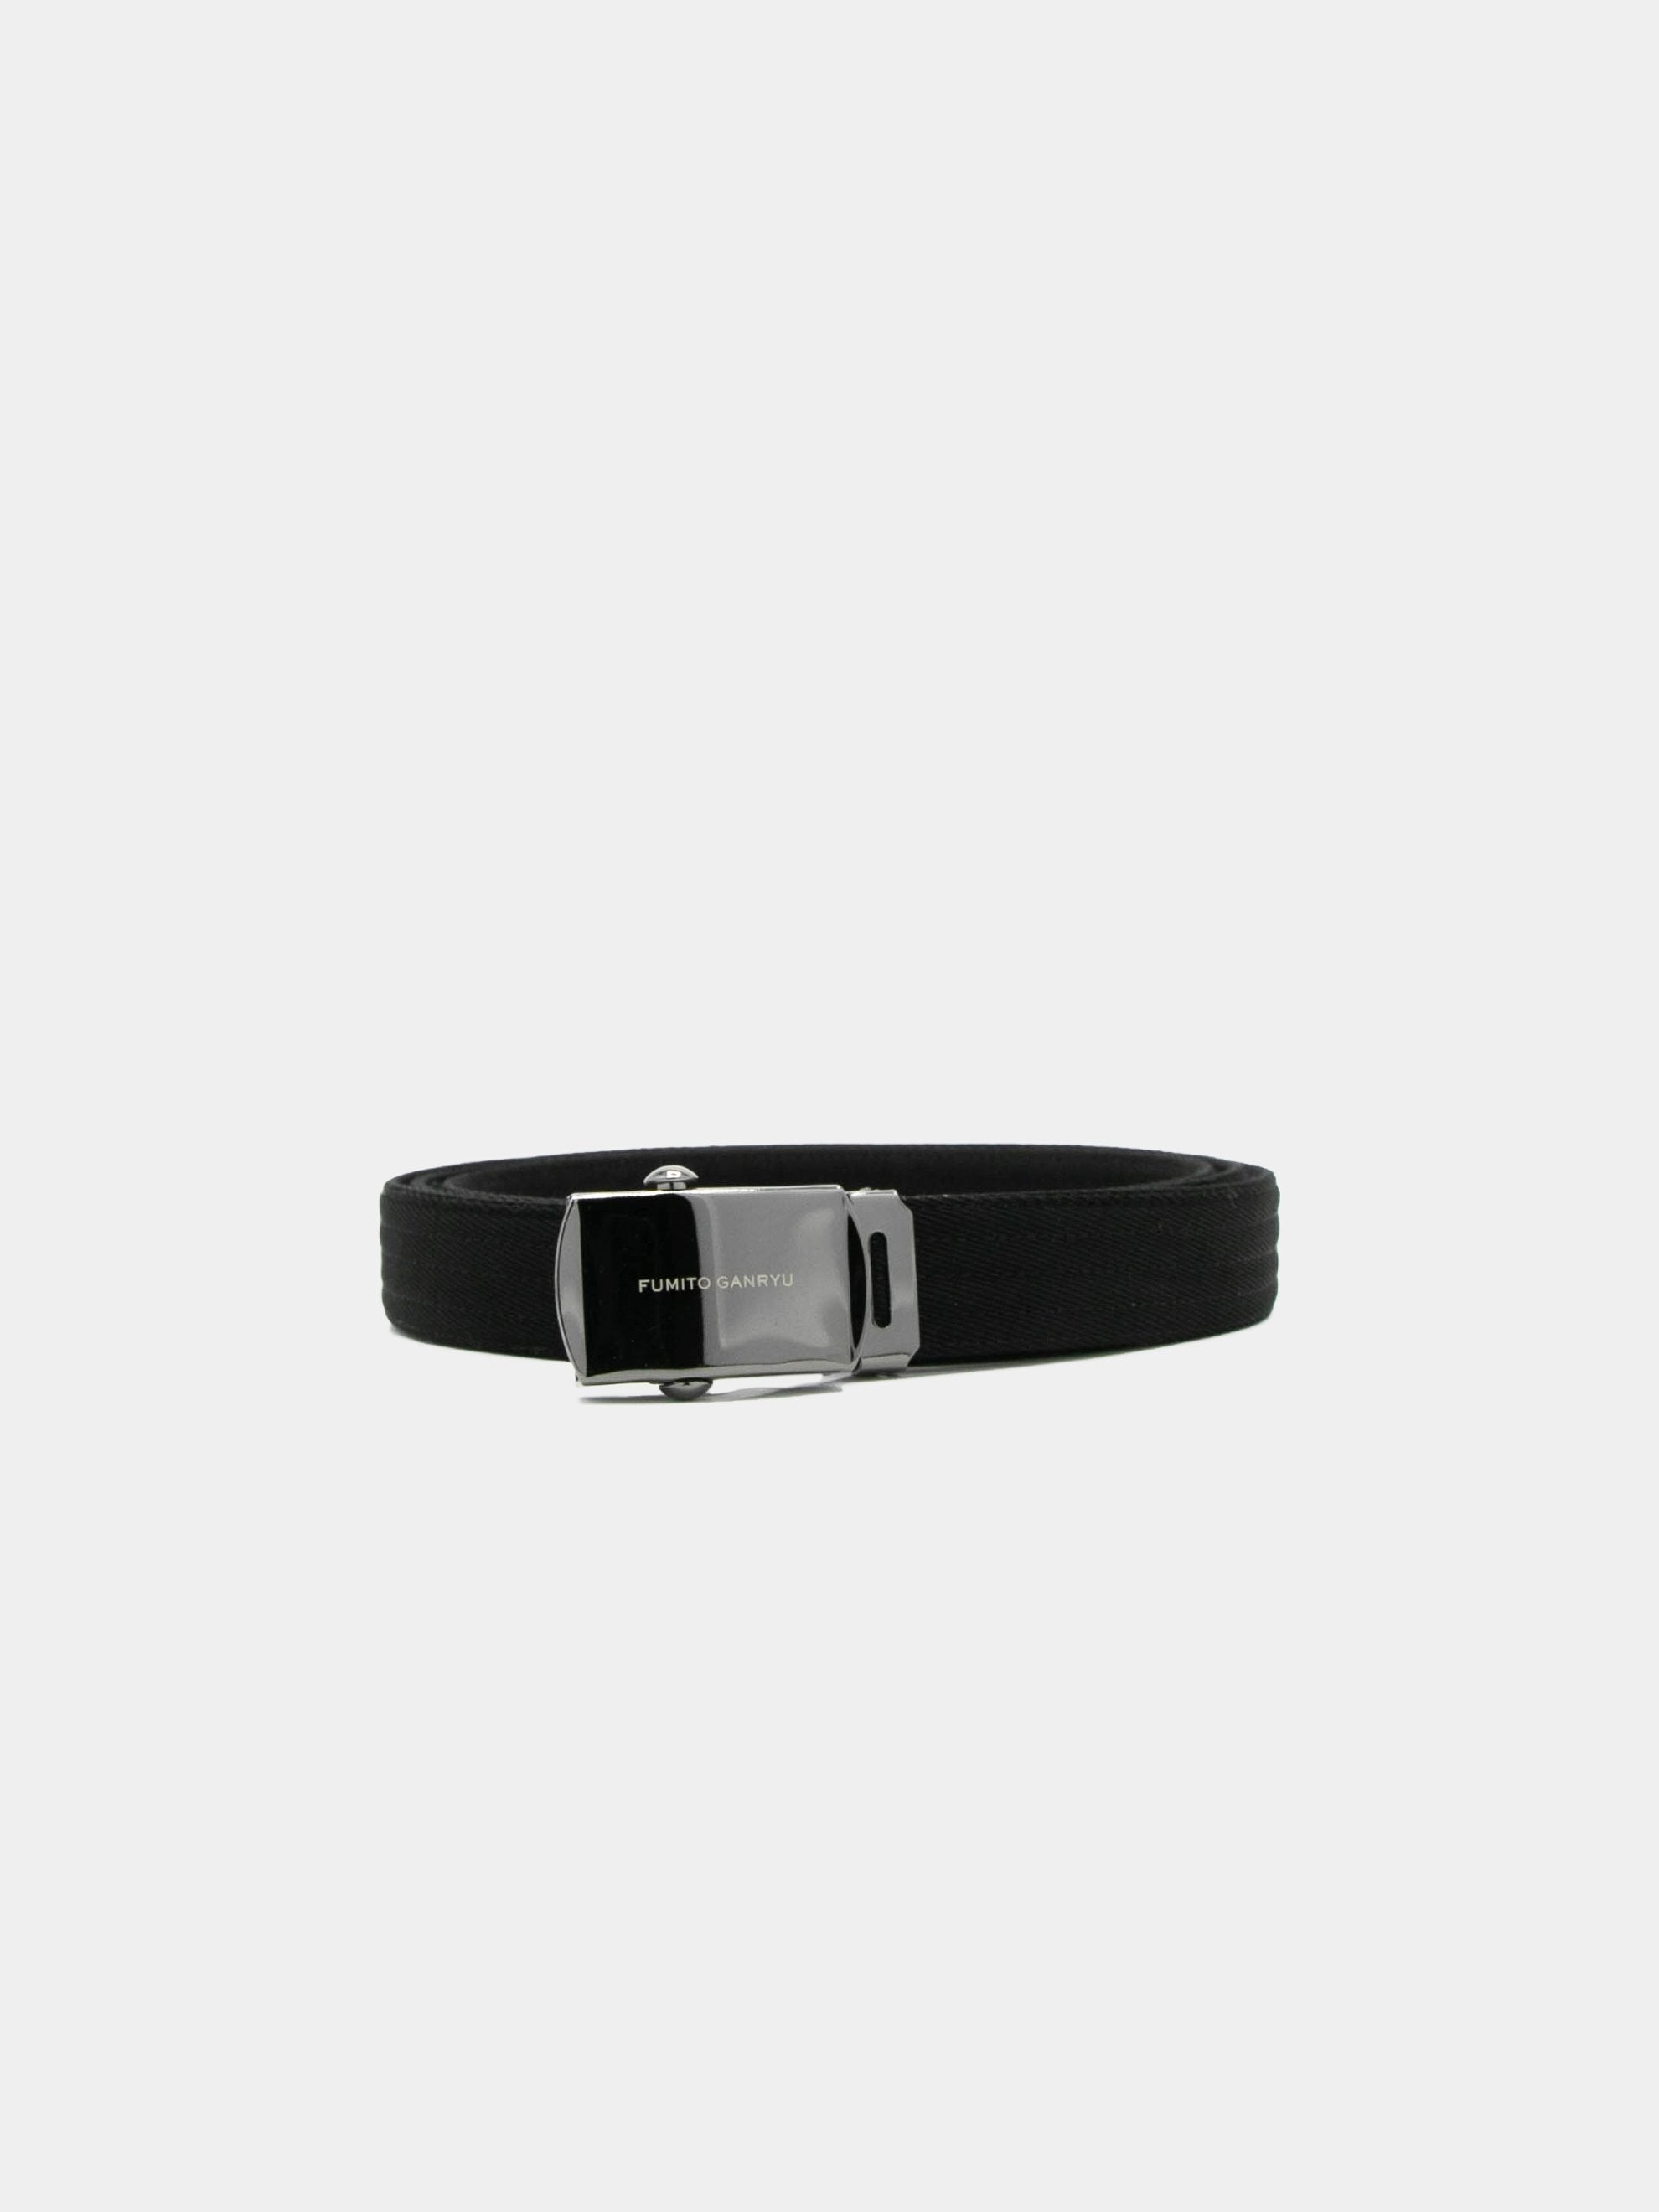 Black Slim Judo Web Roller Buckle Belt 1